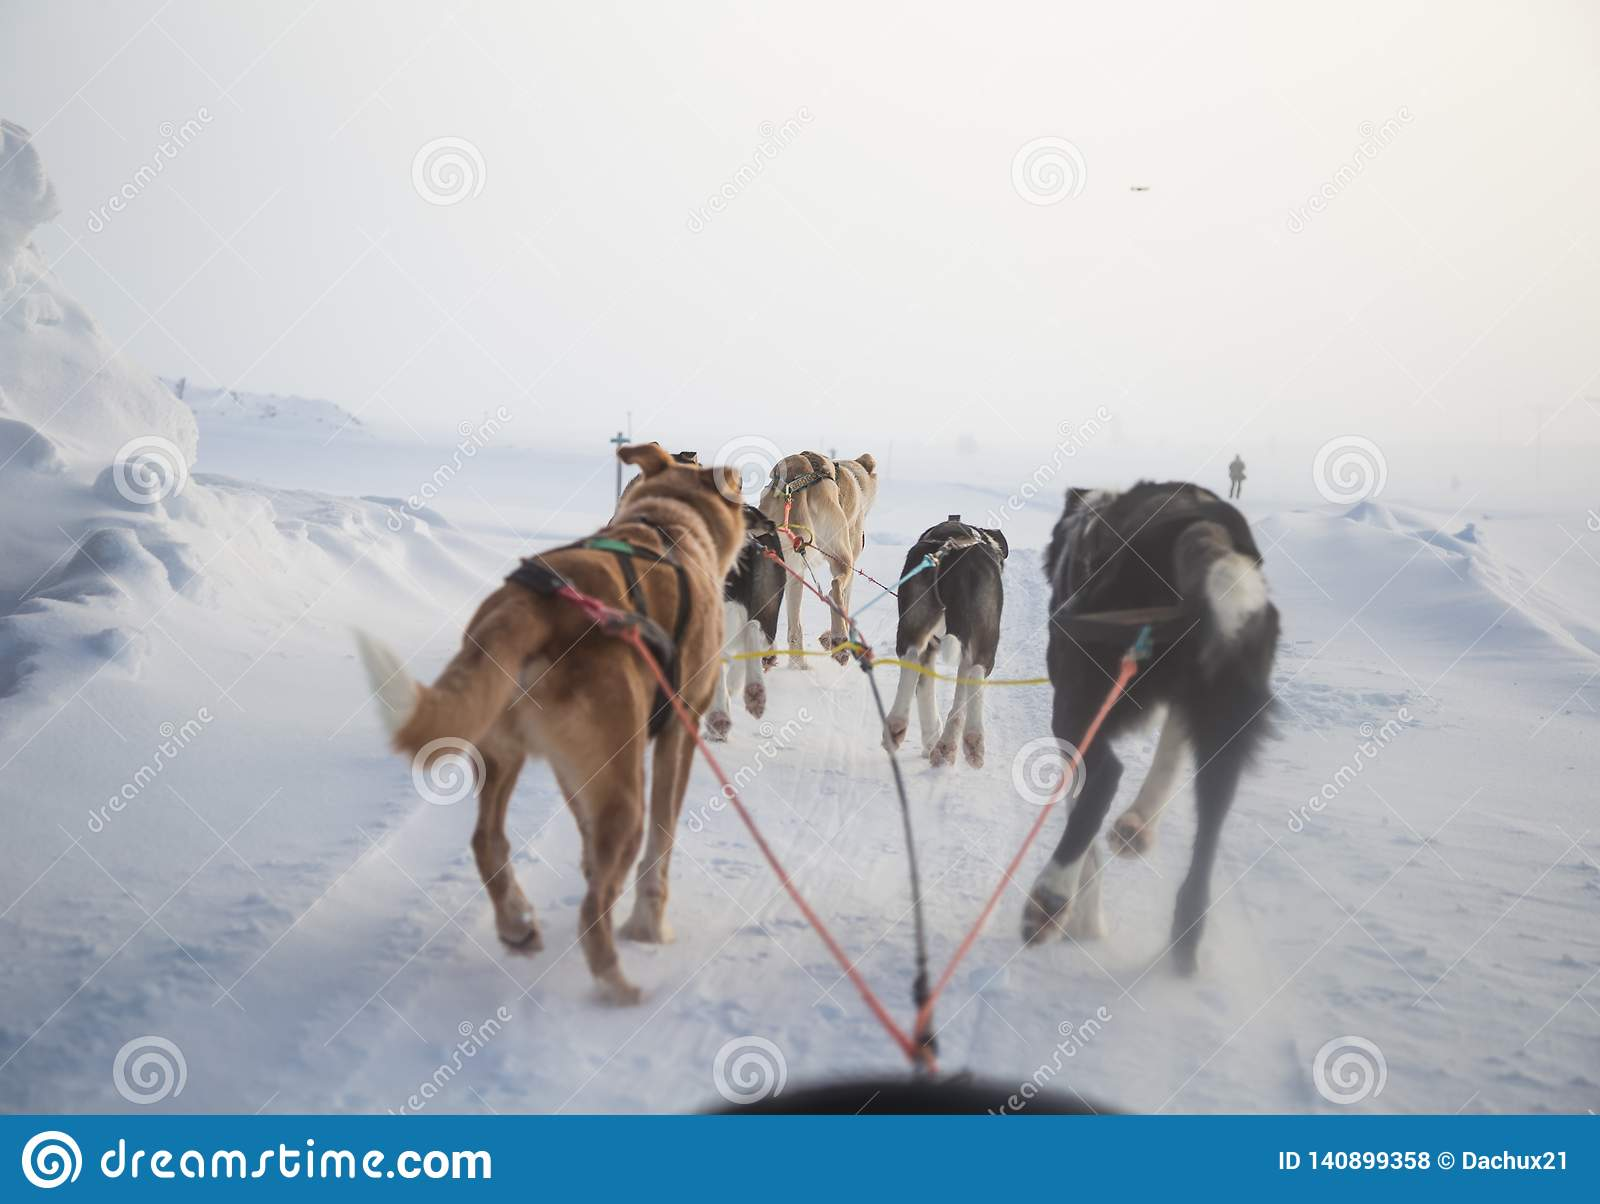 A beautiful six dog teem pulling a sled. Picture taken from sitting in the sled perspective. FUn, healthy winter sport in north.